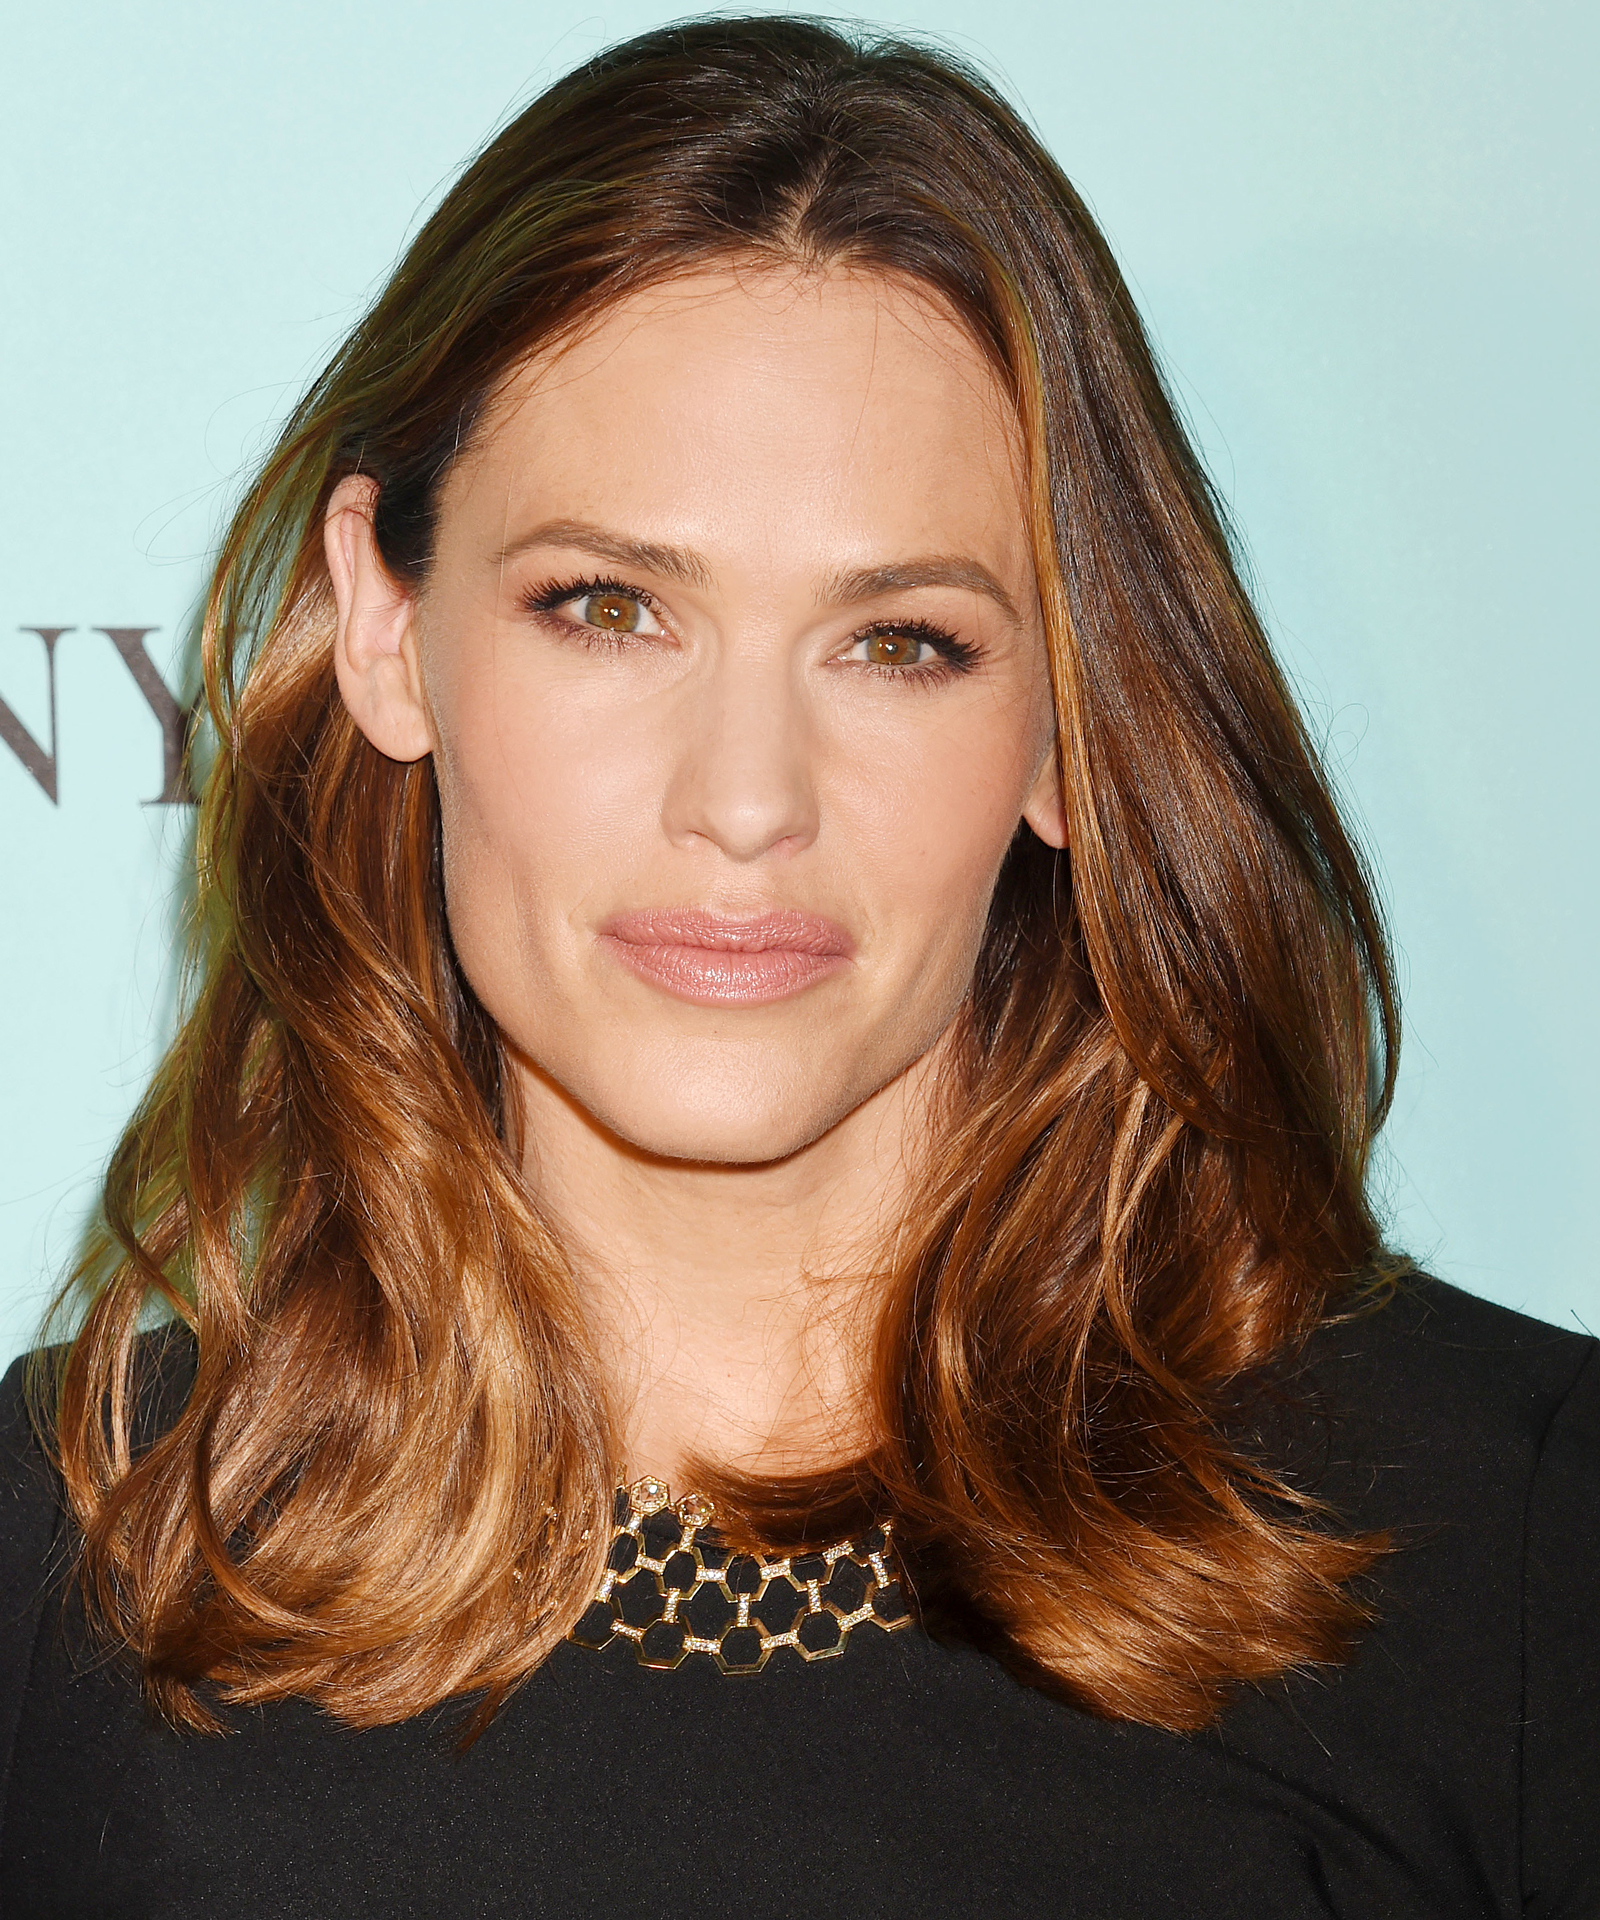 <p>BEVERLY HILLS, CA - OCTOBER 13: Actress Jennifer Garner arrives at the Tiffany And Co. Celebrates Unveiling Of Renovated Beverly Hills Store at Tiffany & Co. on October 13, 2016 in Beverly Hills, California. (Photo by Jeffrey Mayer/WireImage)</p>